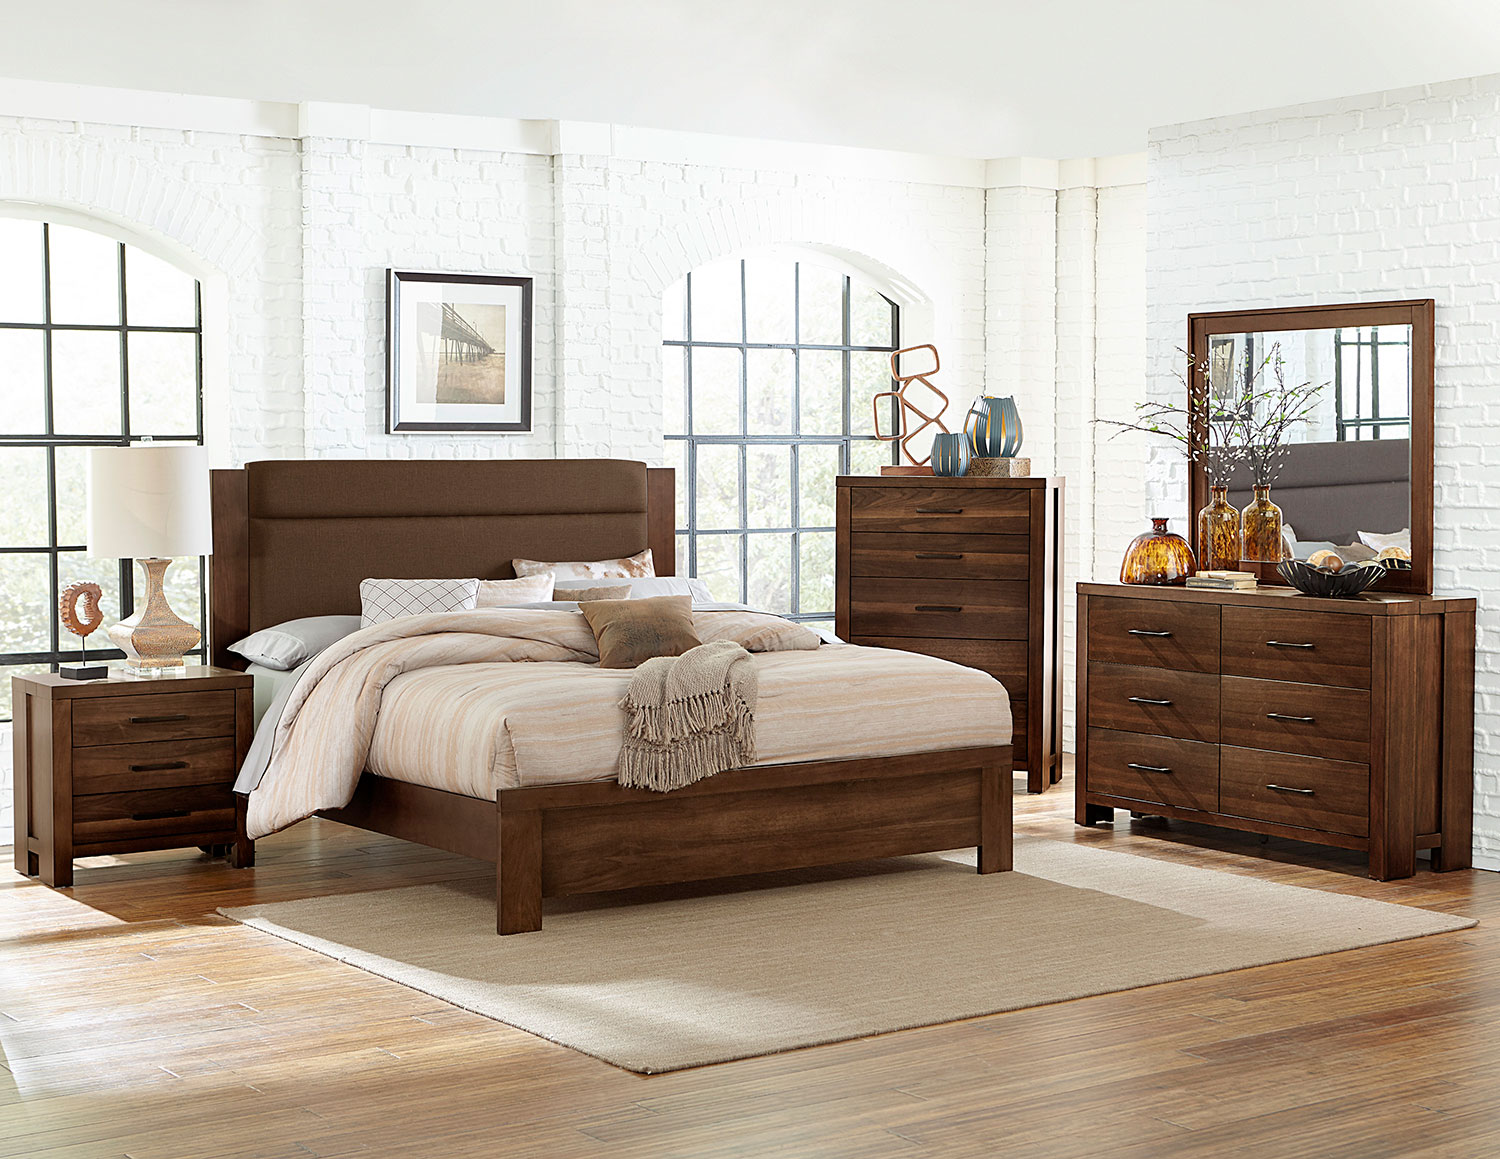 Bedroom sets for less 28 images mor furniture for less bedroom sets home delightful bedroom Home furniture for less